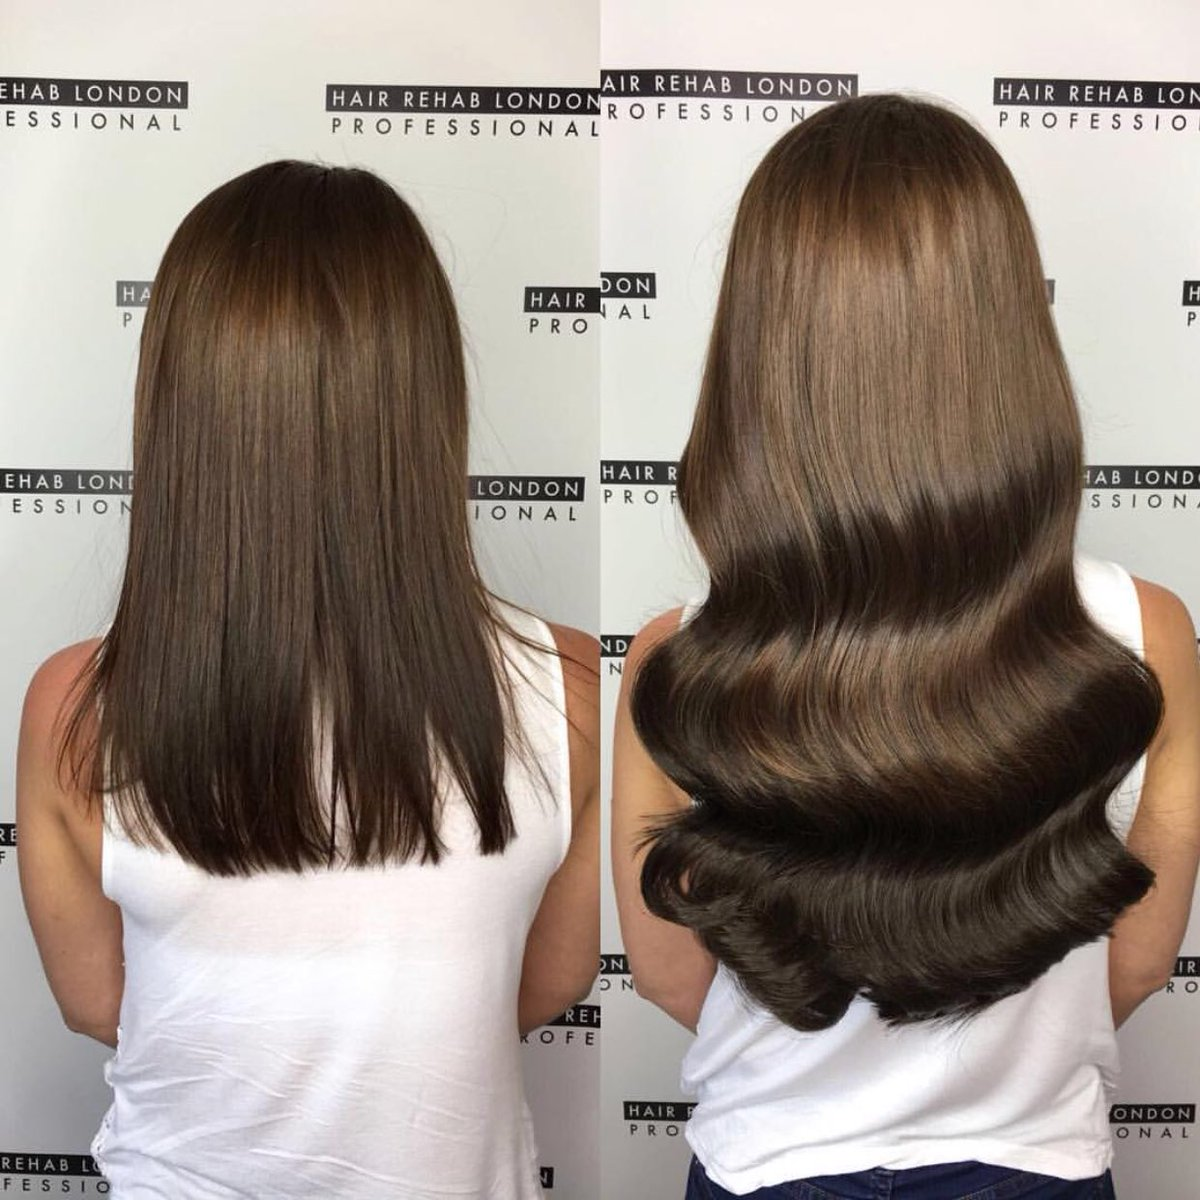 S E A M L E S S Leighgrant89 Doing Her Thing Using Our Salon Pro